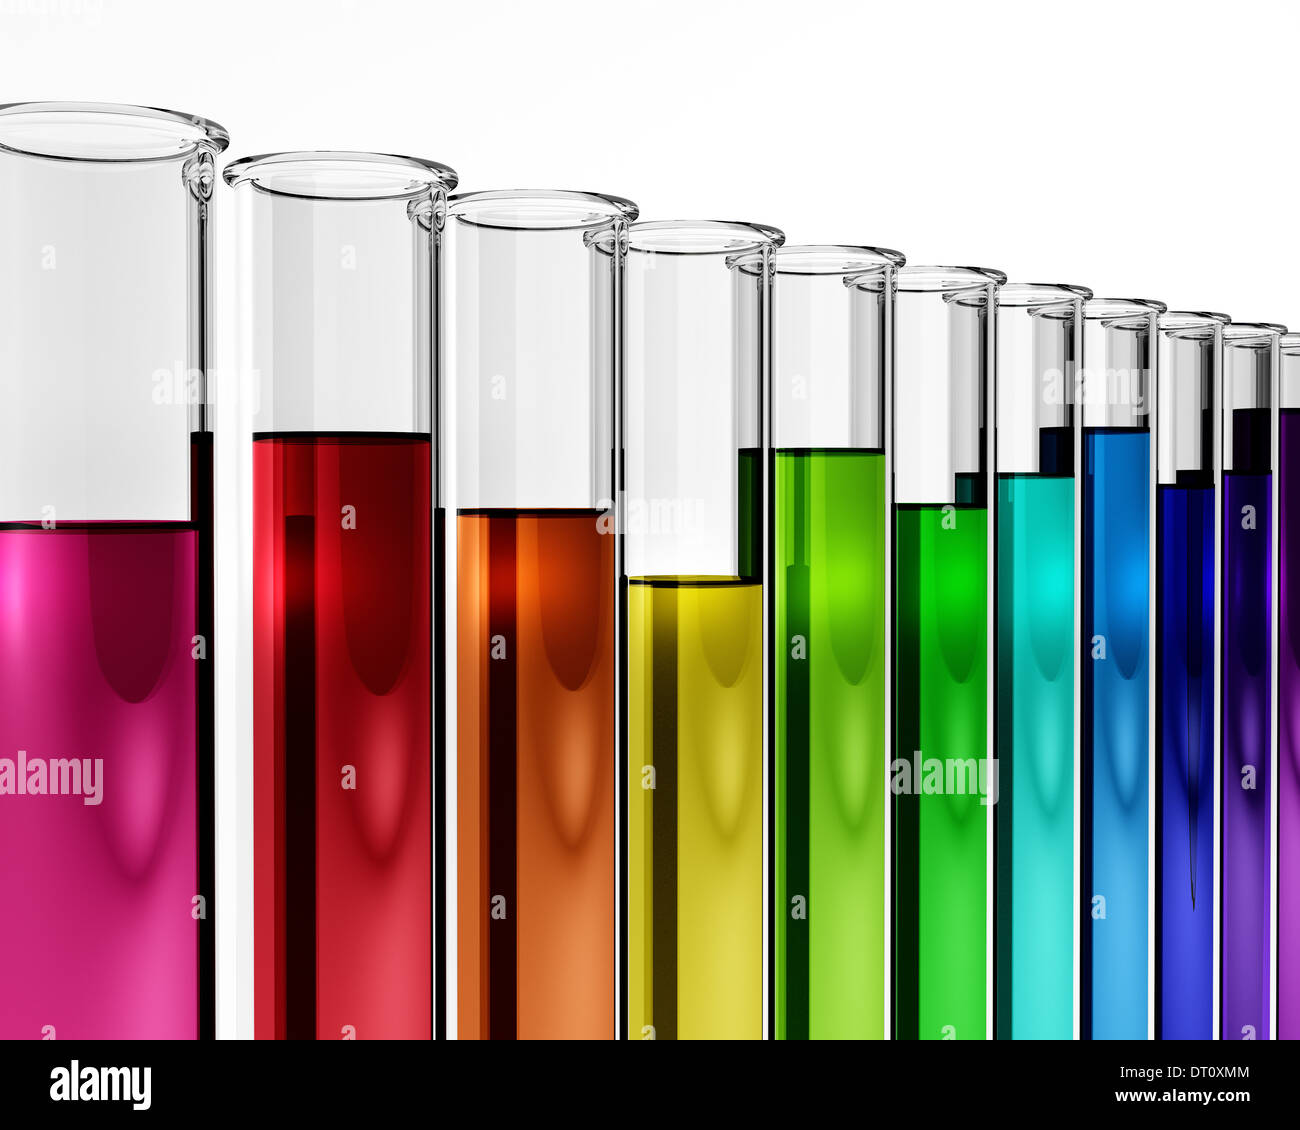 Chemical Test Tube For Chemistry Proof Mixture